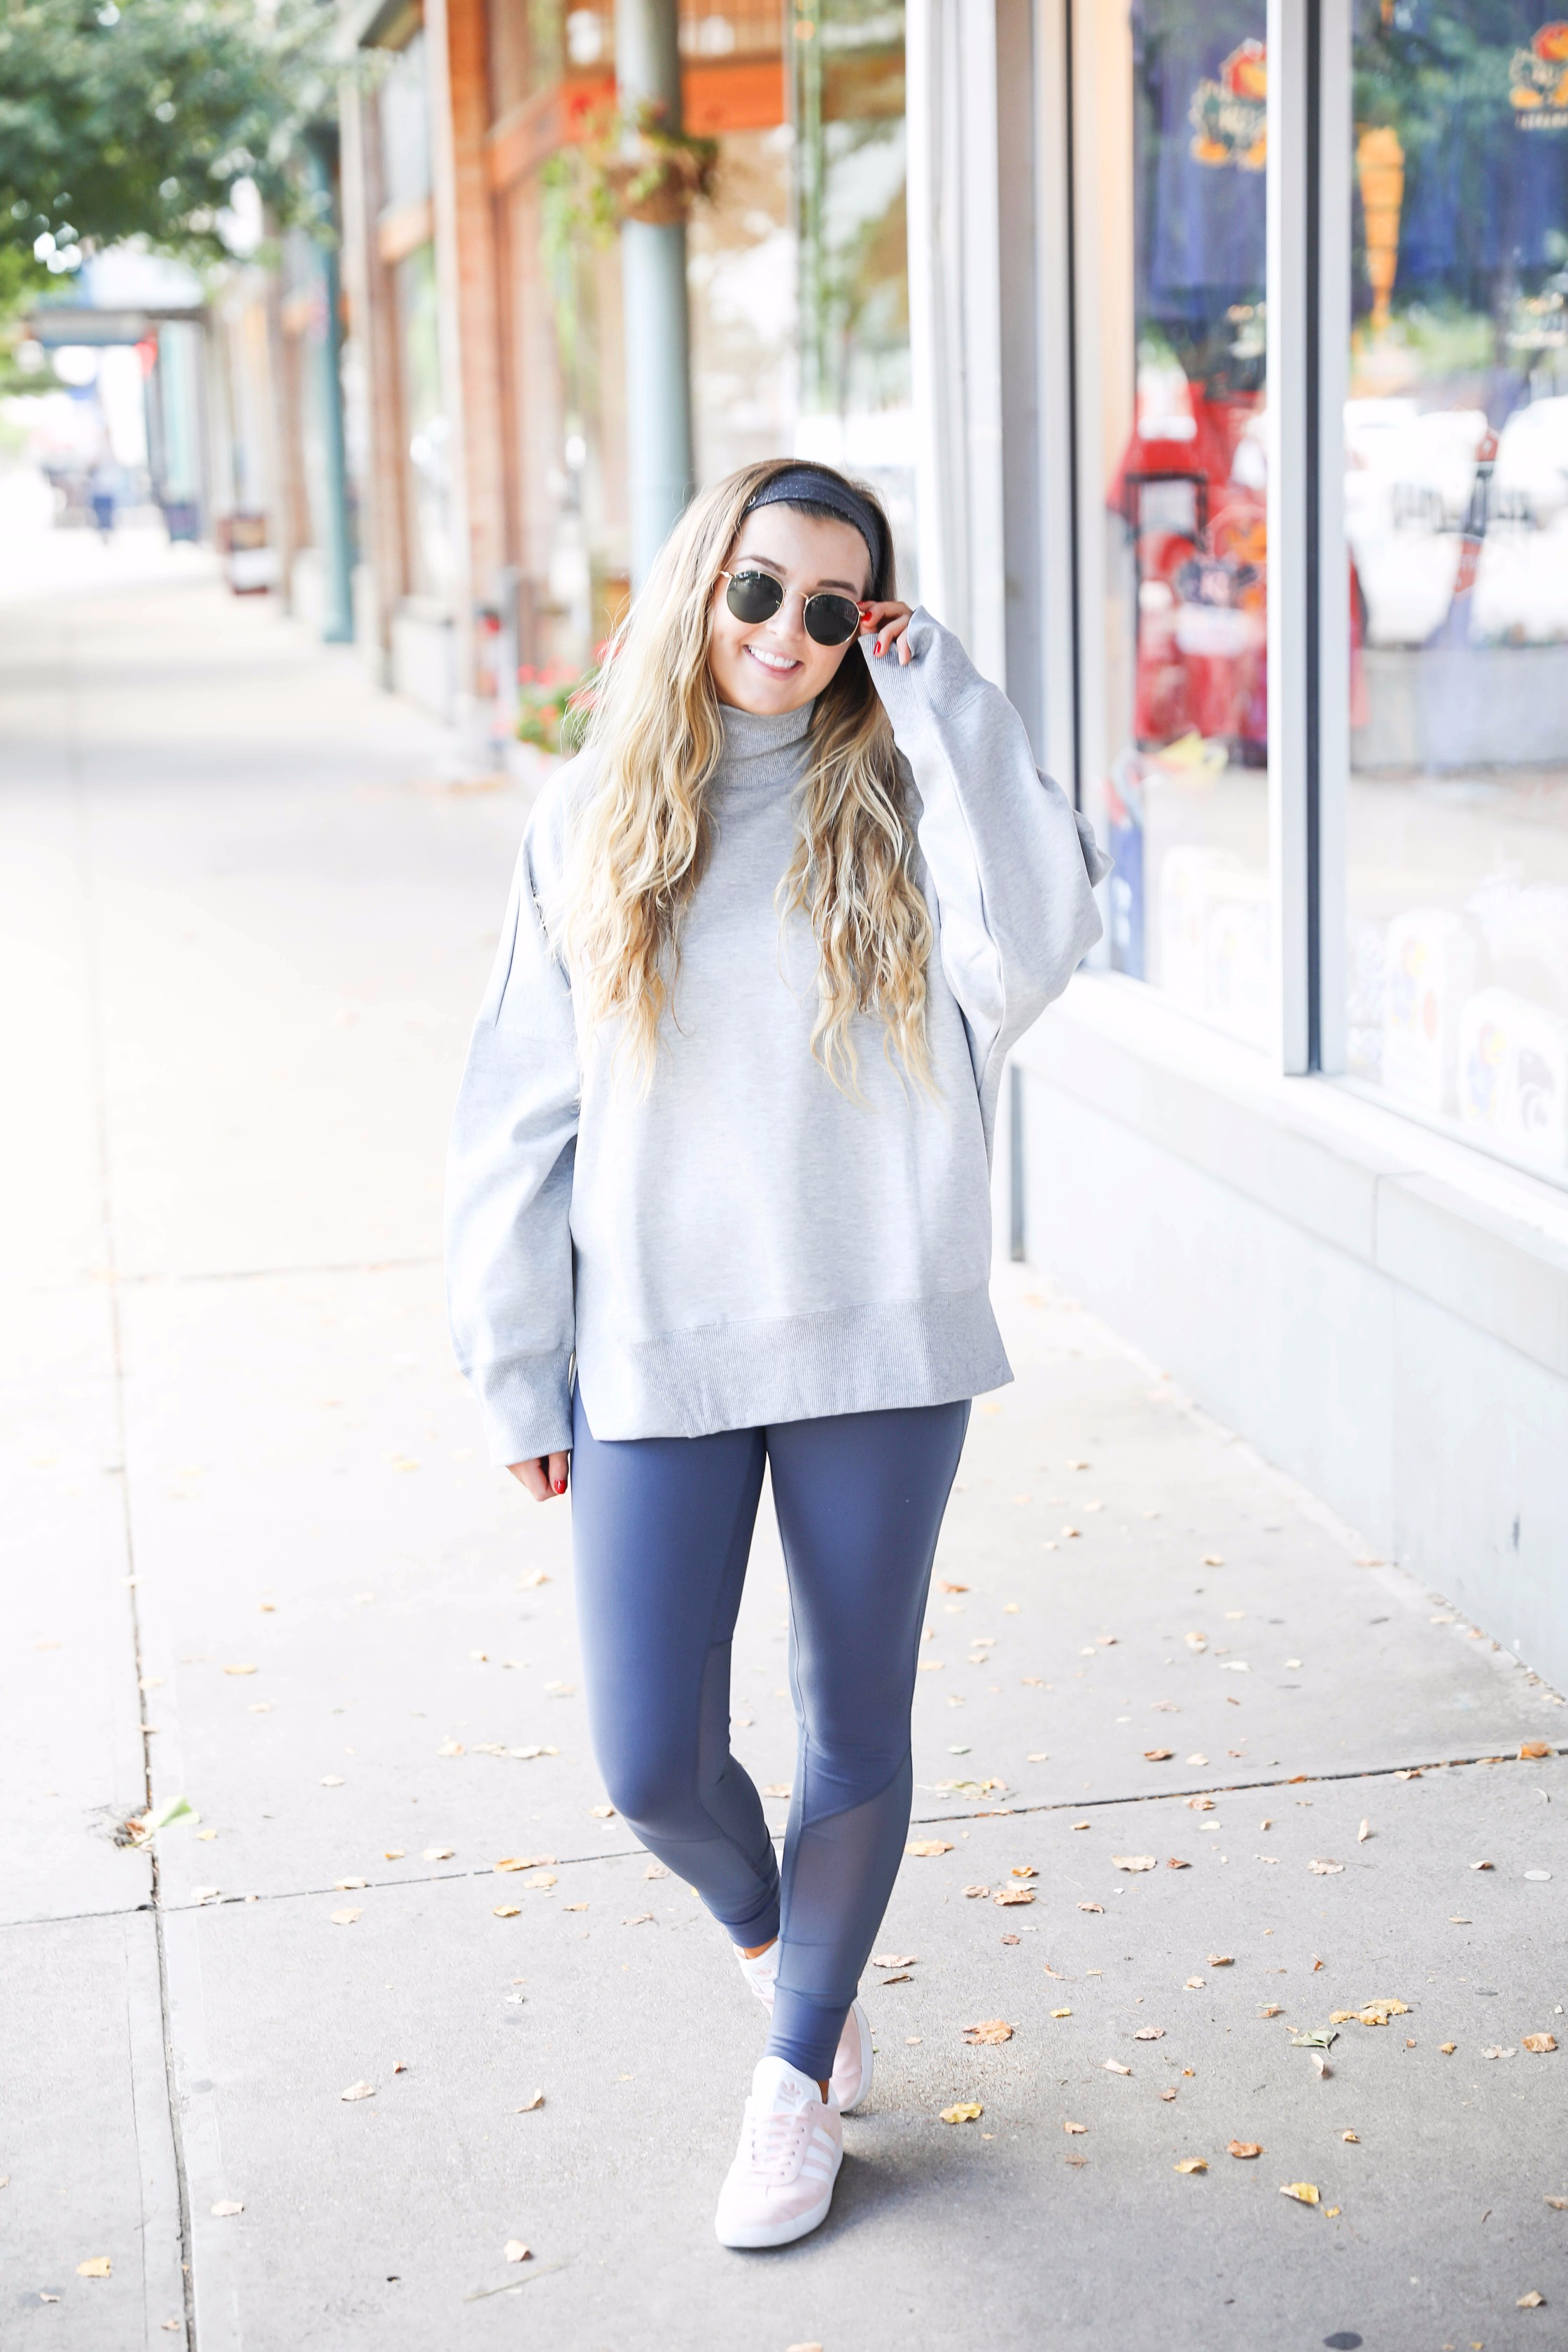 Adidas sweatshirt and zella leggings cute athleisure look on fashion blog daily dose of charm by lauren lindmark